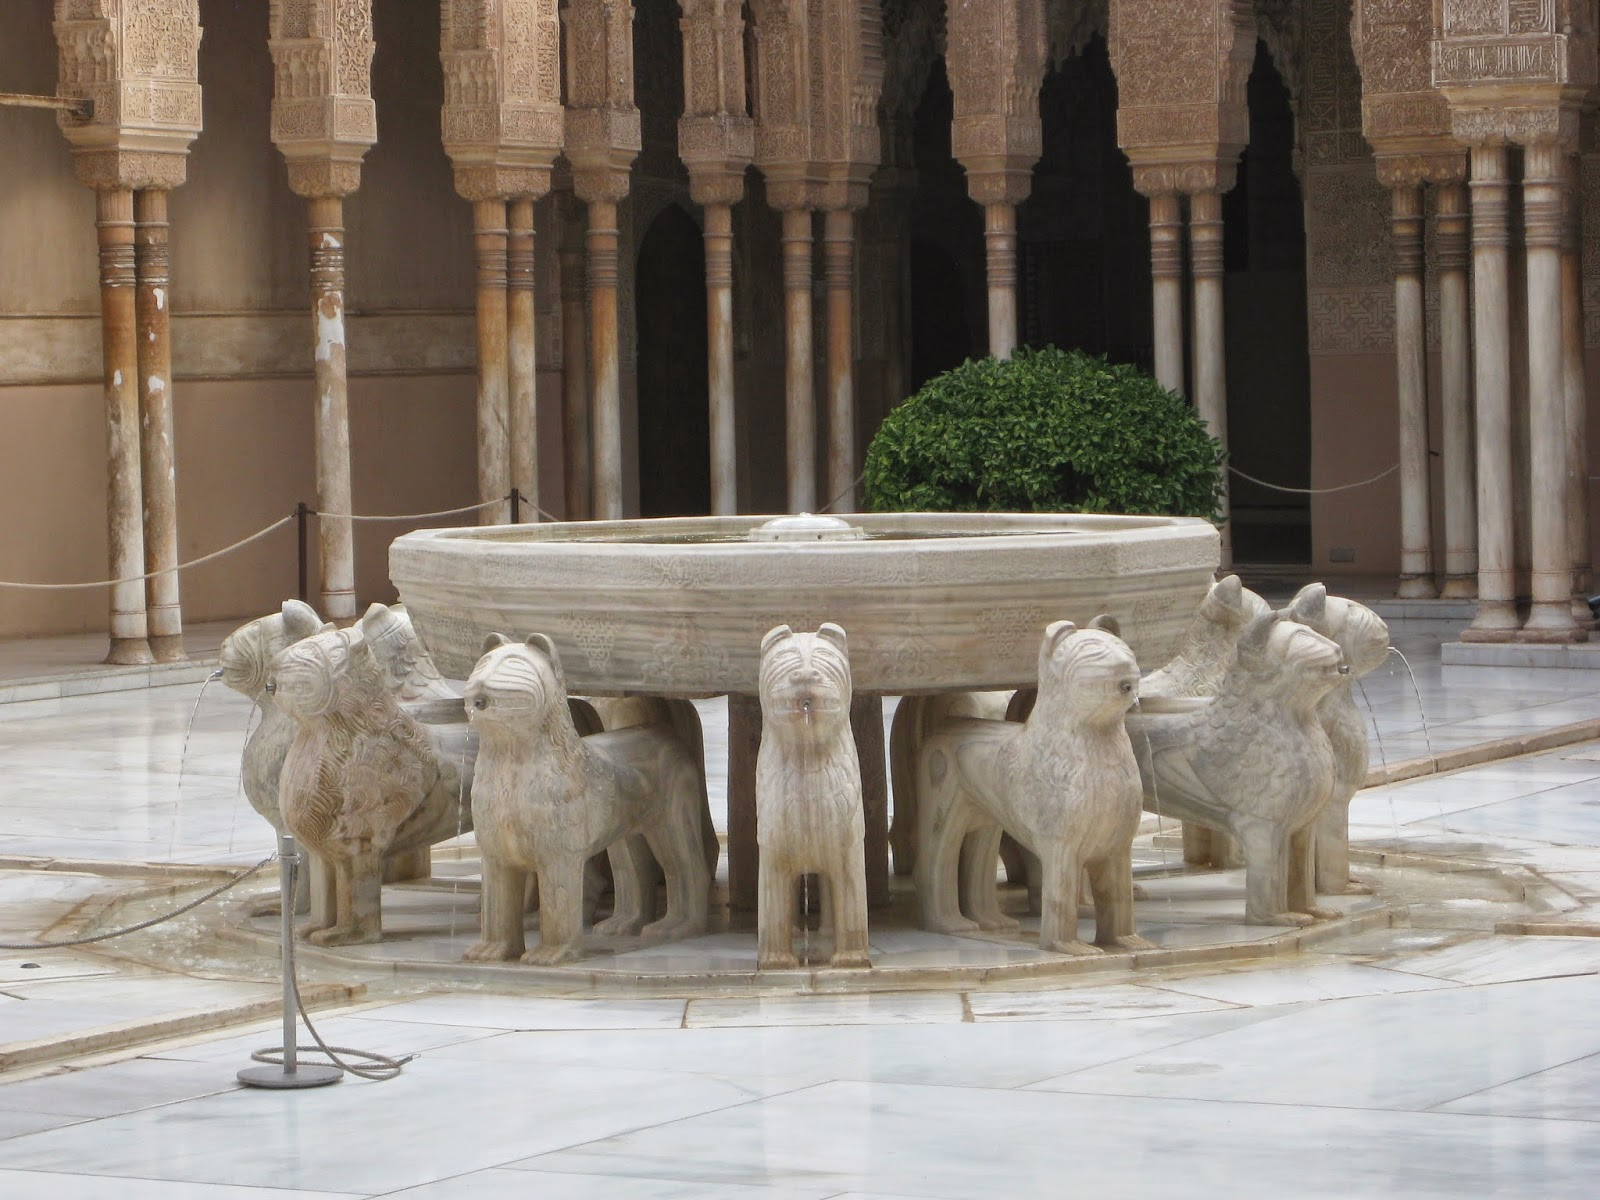 Granada - Fountain in The Court of the Lions